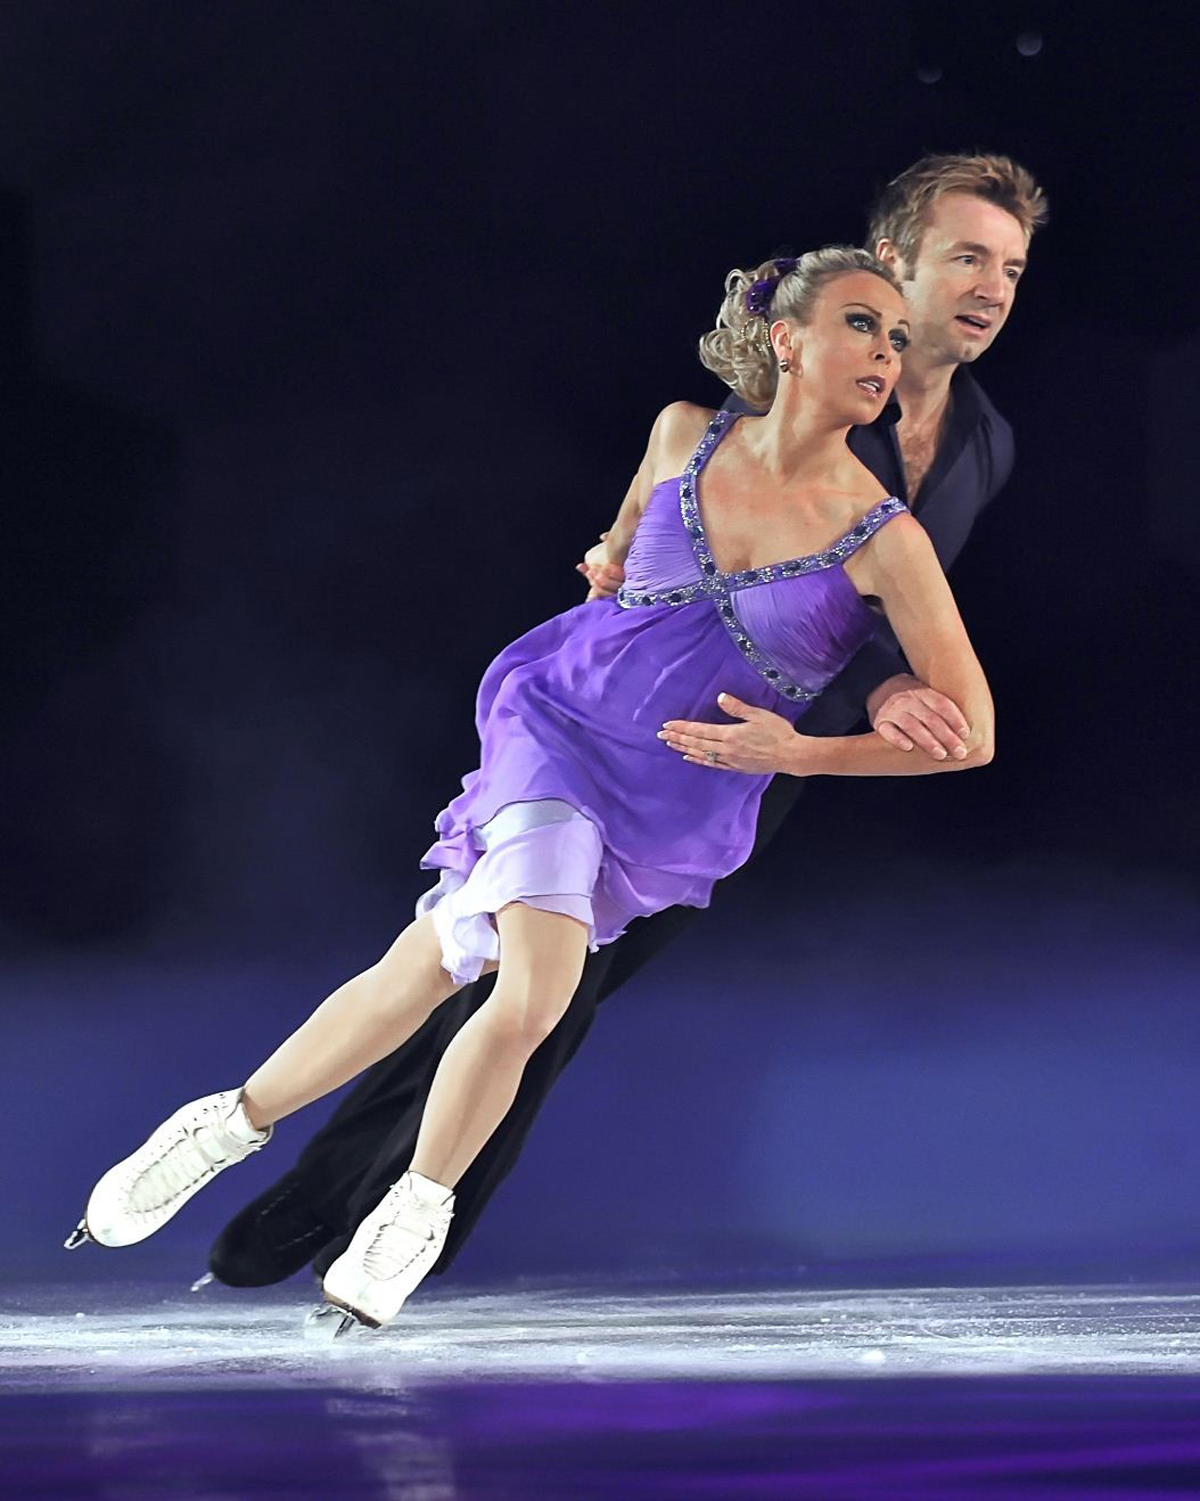 Review: Dancing on Ice the Final Tour